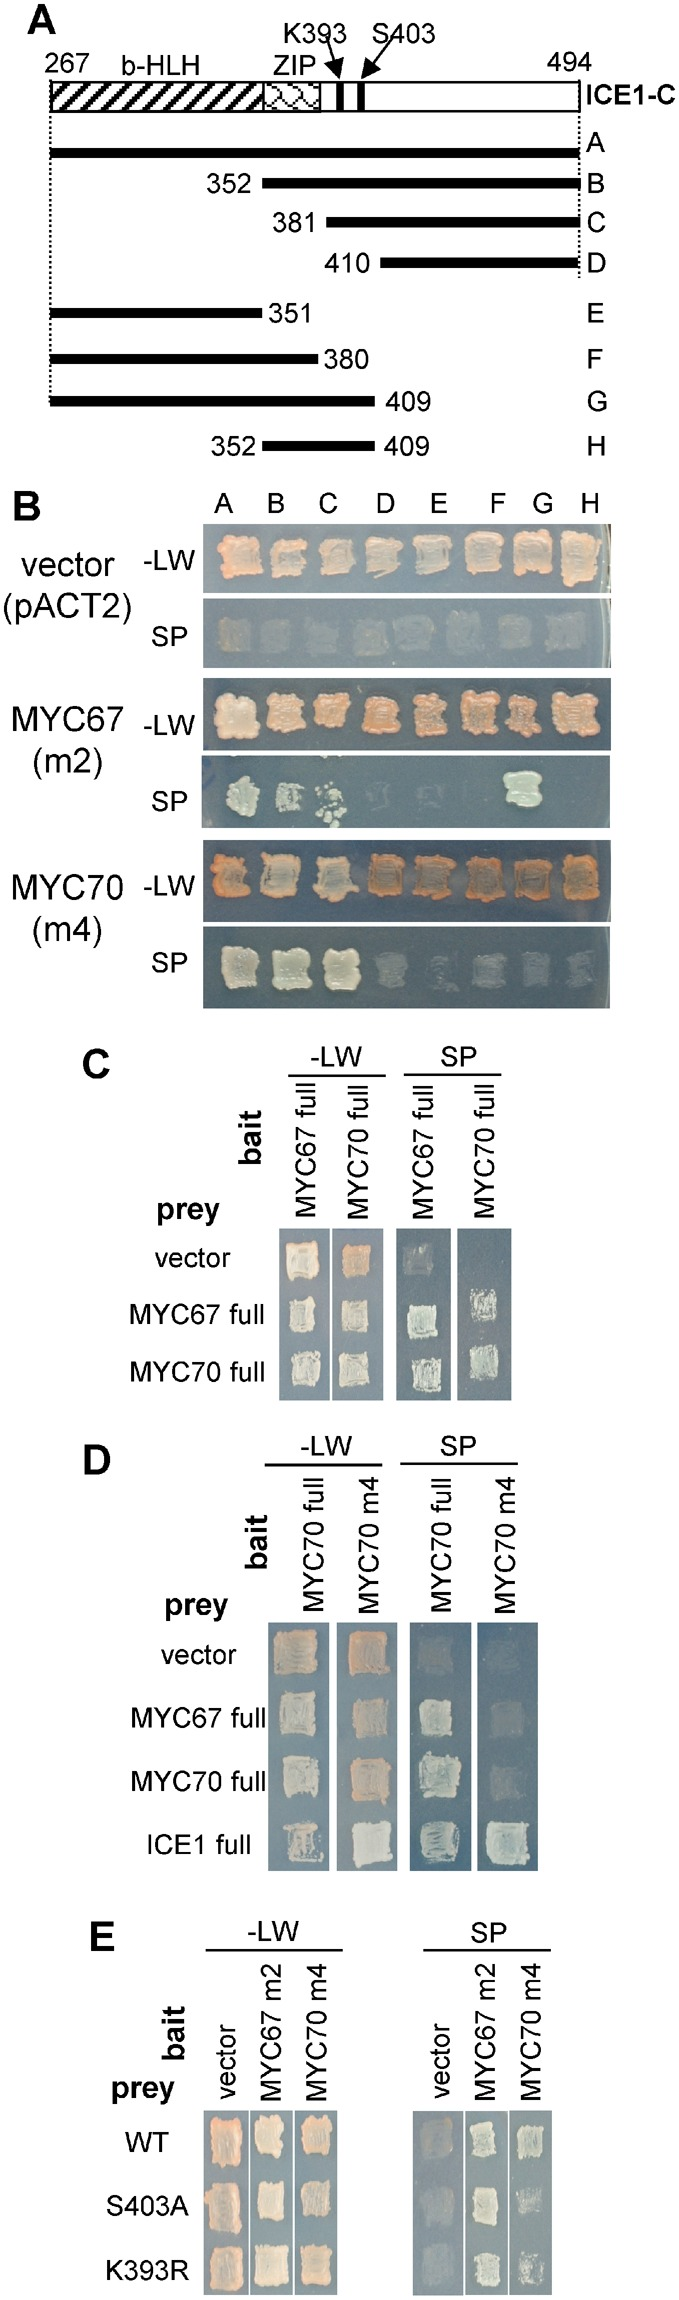 Interactions between ICE1, MYC67, and MYC70. ( A ) A schematic representation of the deletion constructs for ICE1. The indicated regions of ICE1 were cloned into the bait vector pGBKT7. ( B ) The interaction of ICE1 with MYC67 or MYC70 was assessed using the yeast 2-hybrid assay. The ICE1 bait plasmid was transformed with either pACT2 (vector control), pACT2-MYC67 m2 (amino acids 3–358), or pACT2-MYC70 m4 (amino acids 246–359). Yeast grown on SD media without leucine and tryptophan (upper, −LW) and on selection plates (lower, SP) are shown. ( C ) MYC67 and MYC70 form homodimers and interact with each other. Yeast strains containing full-length pGBKT7-MYC67 or pGBKT7-MYC70 as bait were transformed with pACT2 (vector control), full-length pACT2-MYC67 or full-length pACT2-MYC70 as prey. Yeast was incubated on −LW or on SP. ( D ) Only ICE1 was able to interact with the C-terminal region of MYC70 in the yeast 2-hybrid assay. MYC70 full was interacted with MYC67, MYC70, and ICE1, but MYC70 m4 was able to interact with ICE1. ( E ) The effect of ICE1 point mutations, S403A or K393R, on the interactions with MYC67 and MYC70.